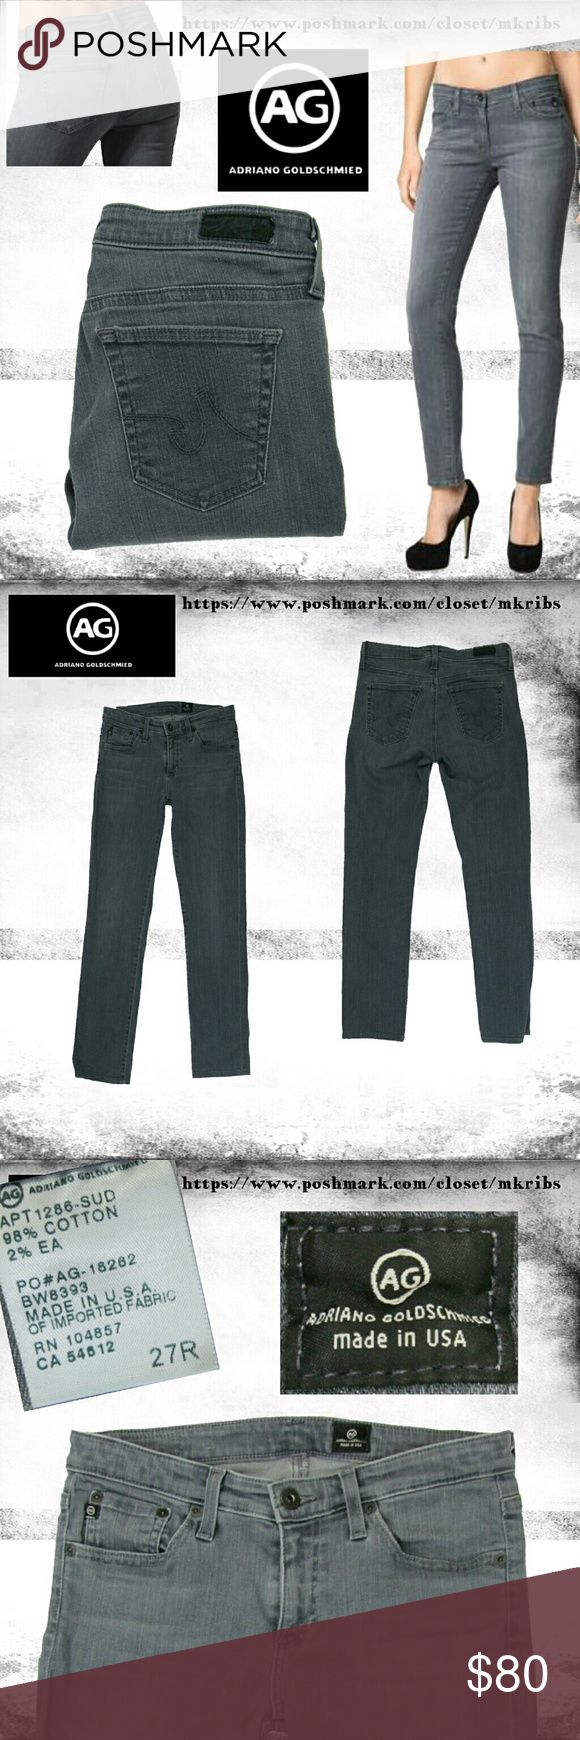 AG Stilt grey Skinny Ankle crop stretch jeans 27 Adriano Goldschmied midrise, skinny, ankle stretch jean with 27 inch inseam. 8 inch rise. A faded dark gray color best shown in the first and 4th photos.  All photos, except the 2 stock photos in the 1st, are taken by me of the jeans that are for sale.  12 inch leg opening. More details and measurements in photos. Excellent condition, free of flaws. NO TRADES PLEASE! REASONABLE OFFERS WELCOME THROUGH OFFER FEATURE ONLY PLEASE! AG Adriano…